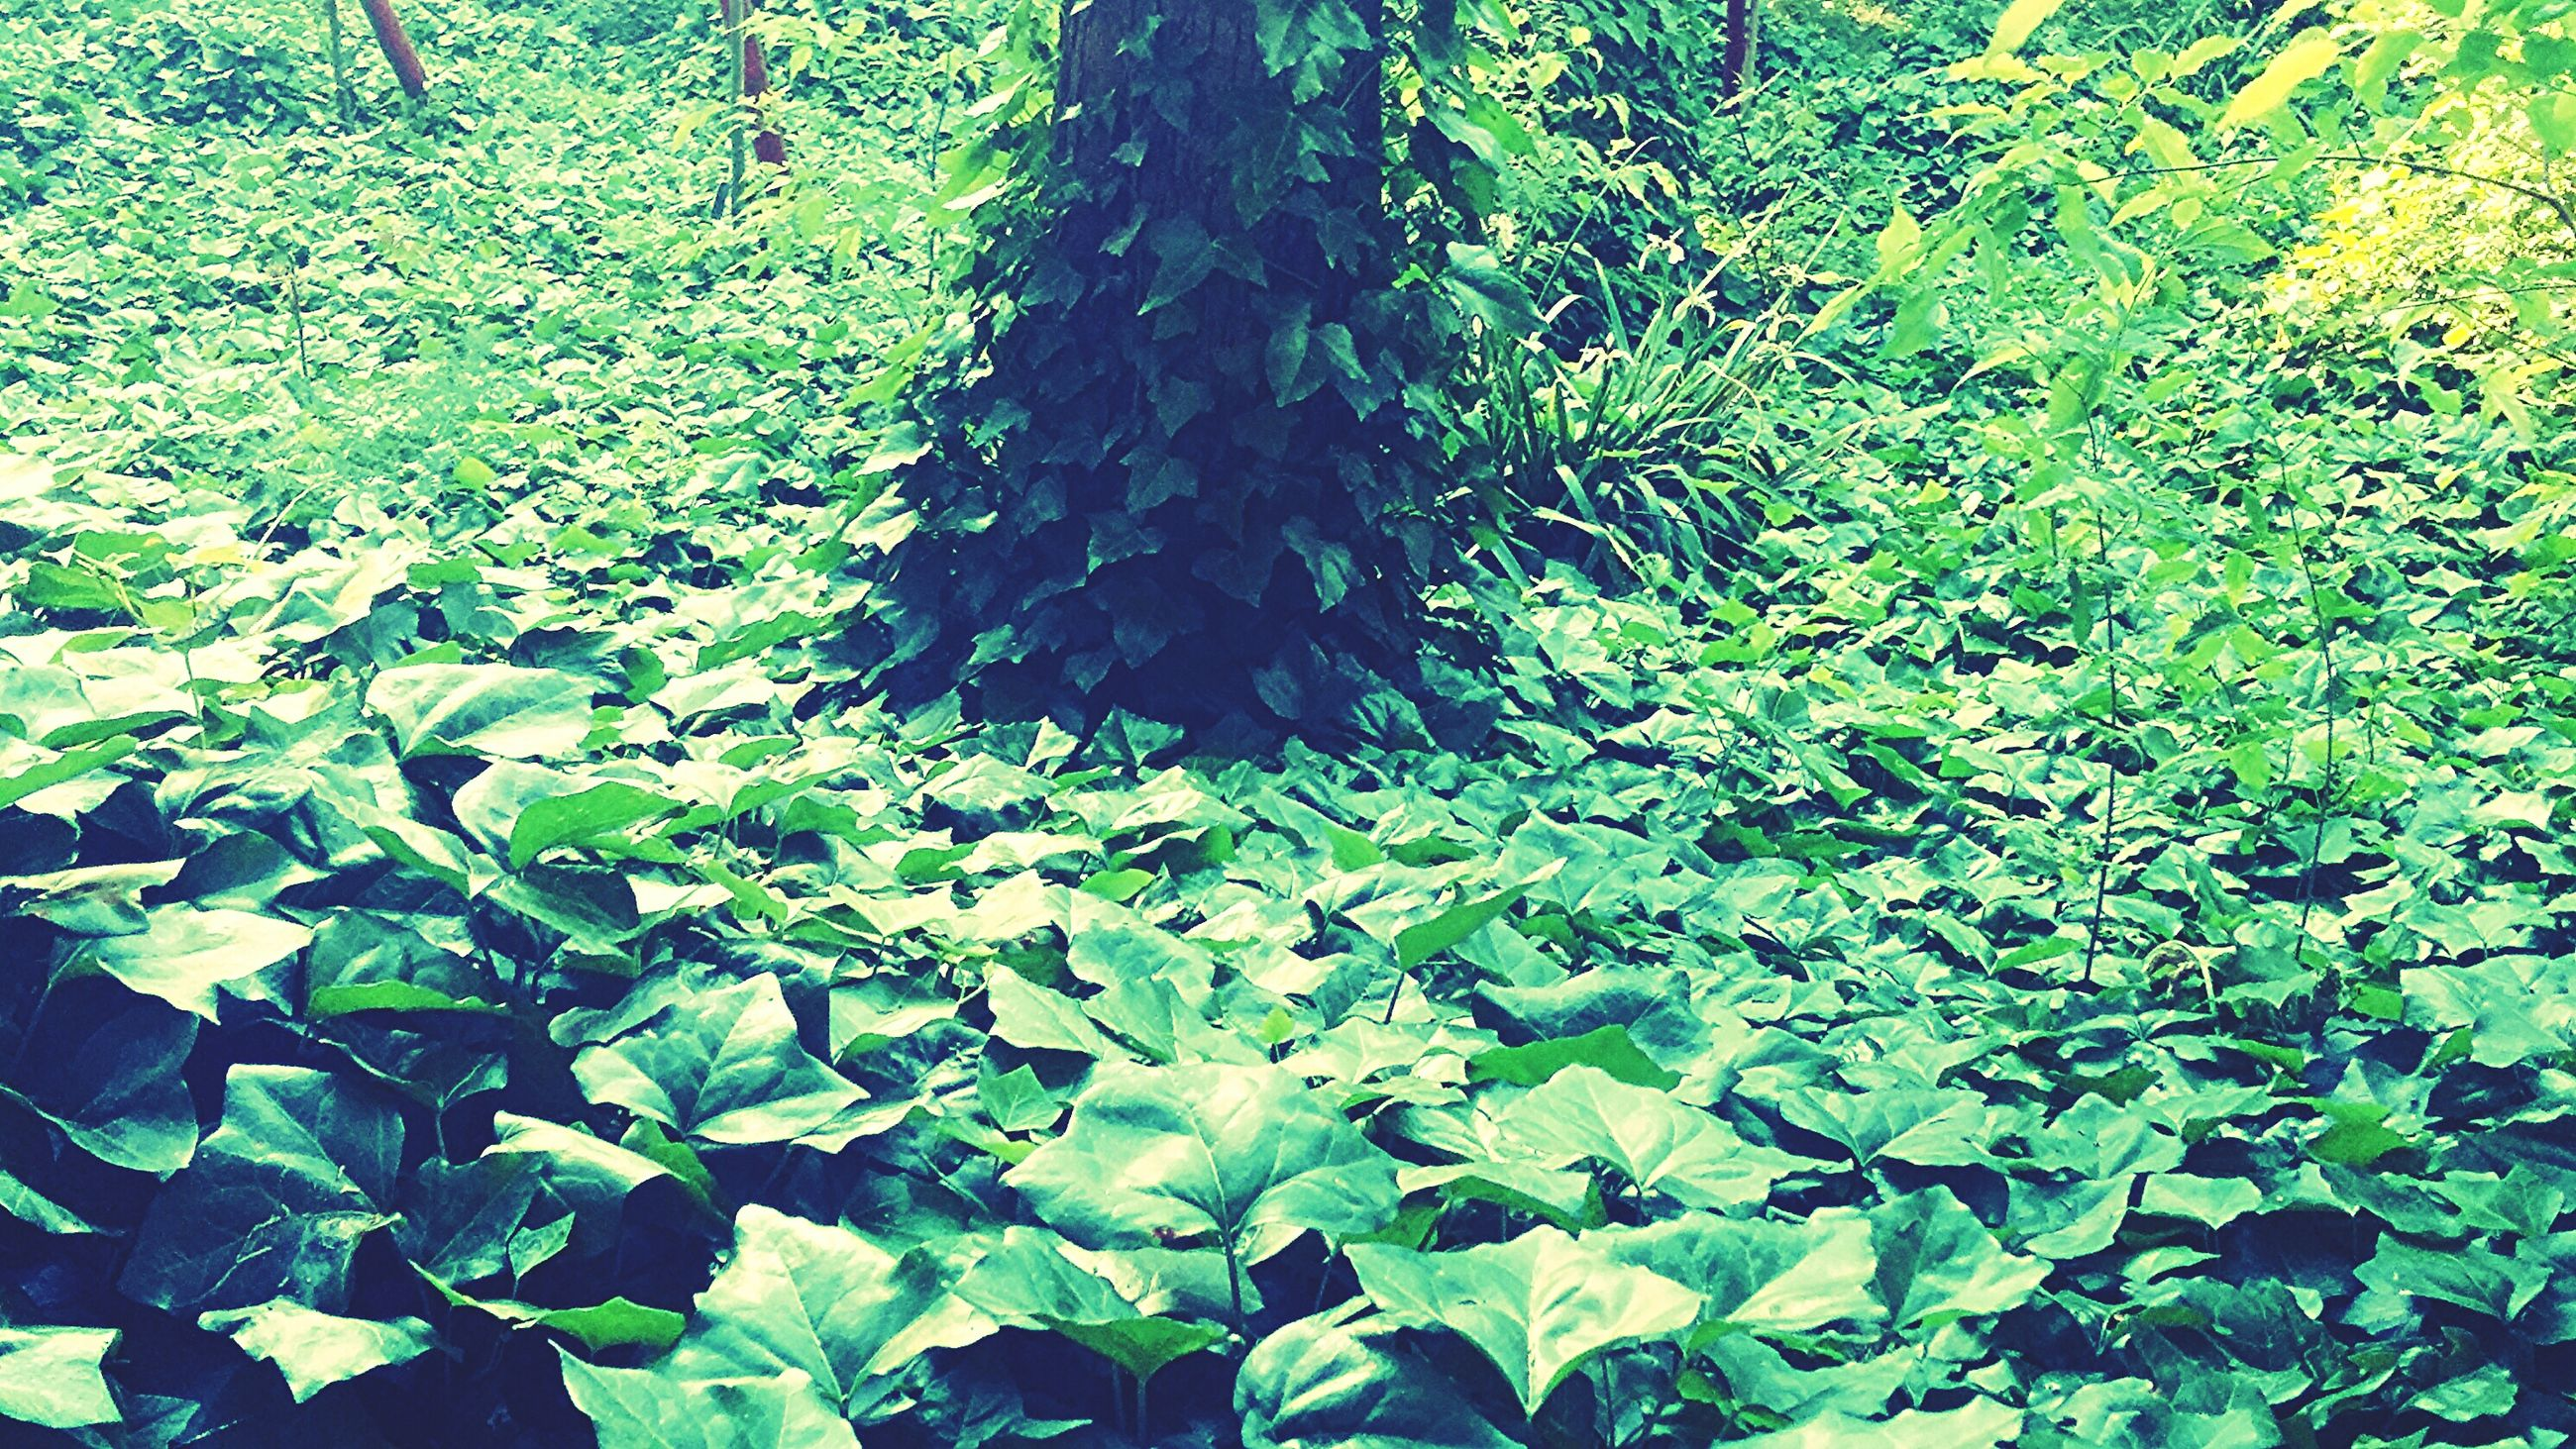 growth, leaf, green color, plant, nature, high angle view, full frame, beauty in nature, backgrounds, tranquility, field, day, outdoors, growing, lush foliage, leaves, no people, green, freshness, sunlight